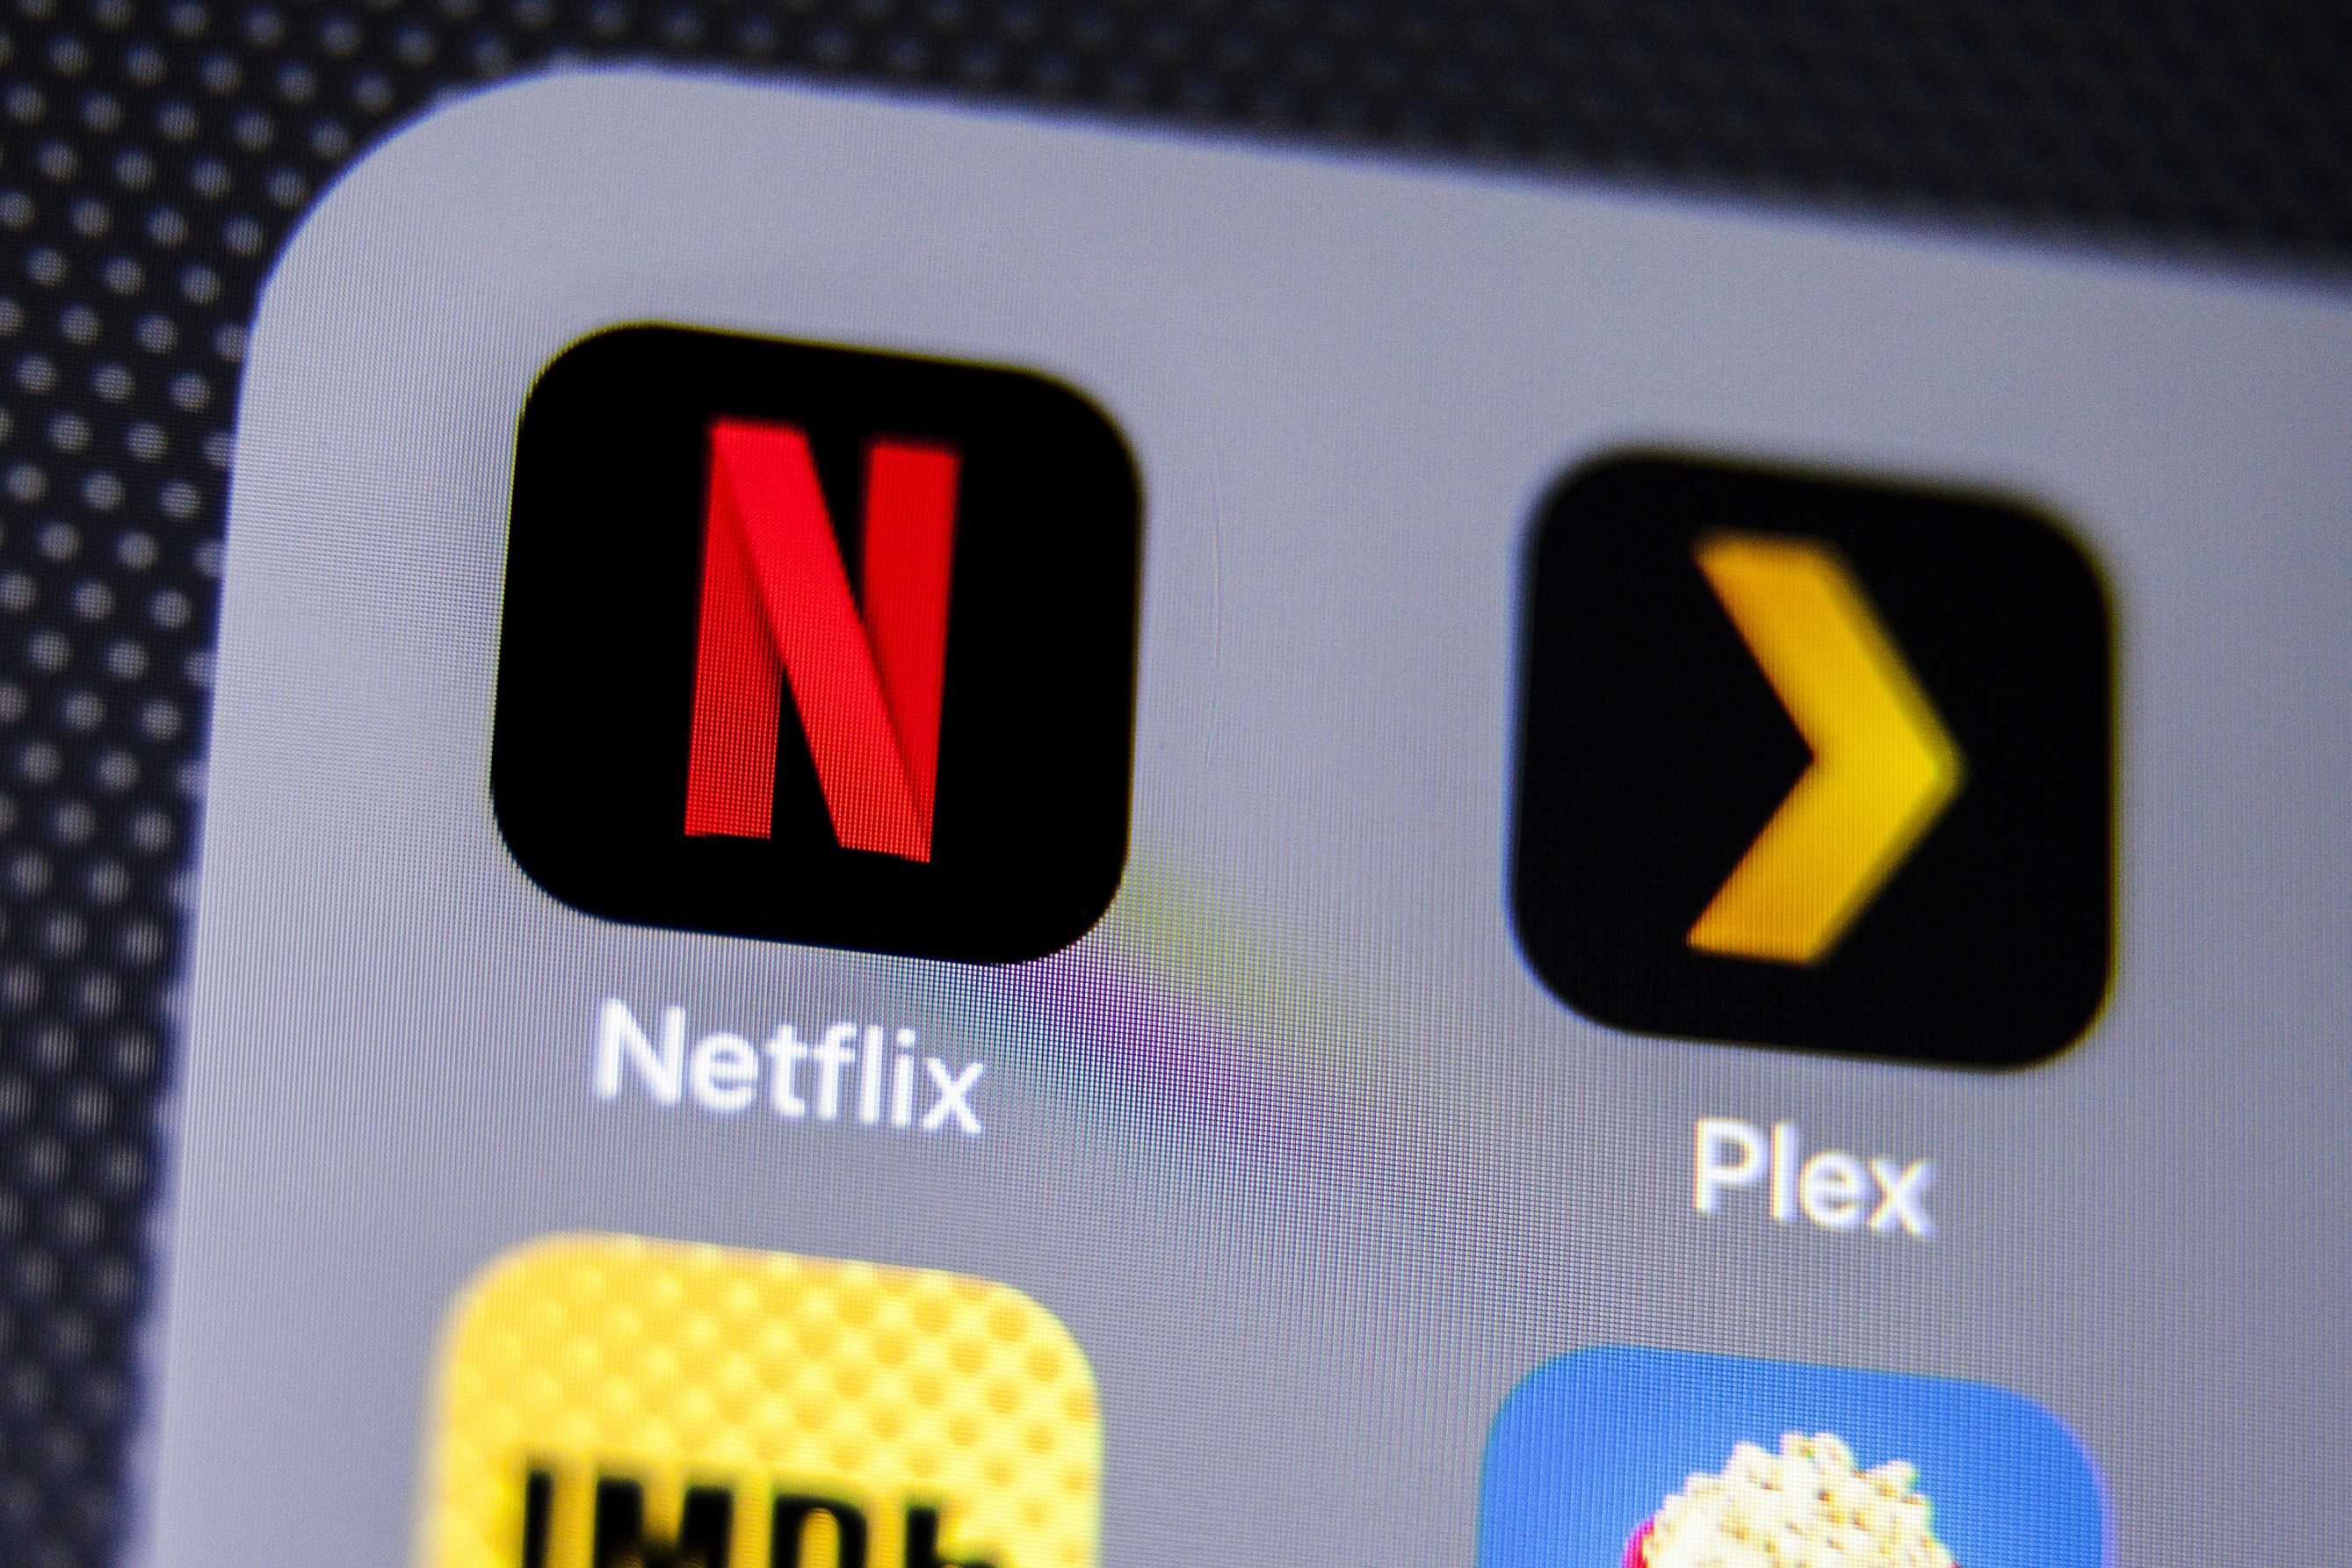 Netflix users beware of email scam: Don't click that link